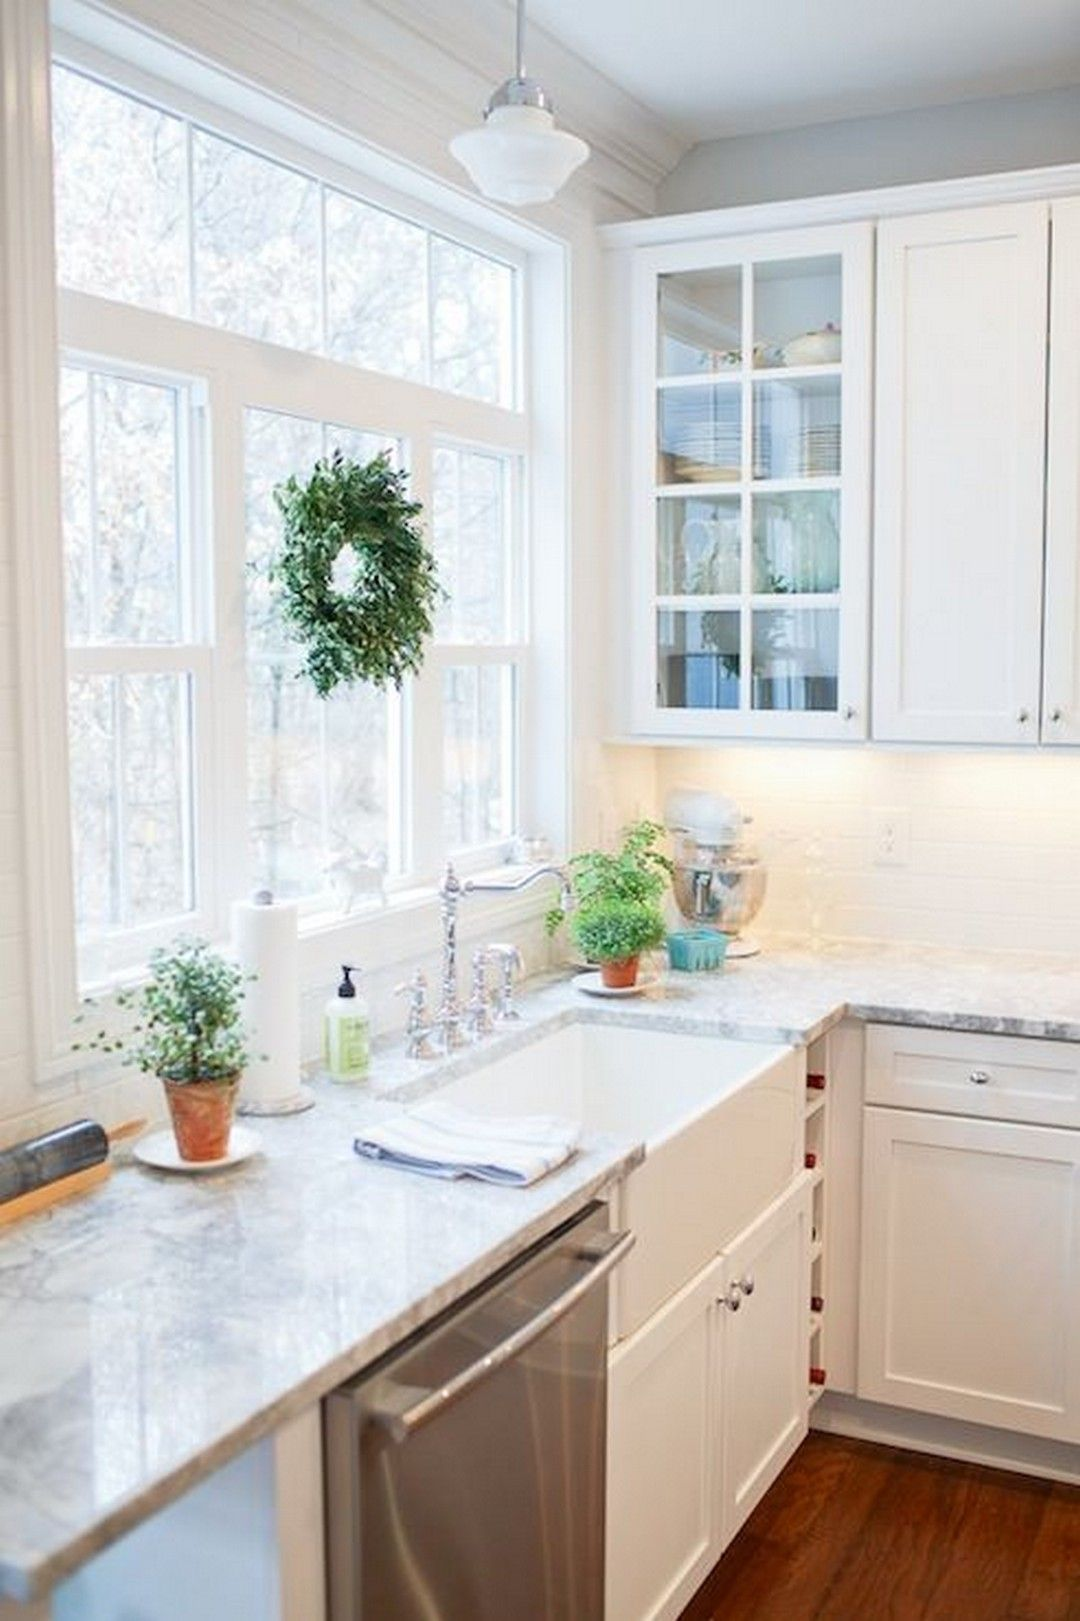 64 Farmhouse Sink With White And Gray Marble Counter In 2020